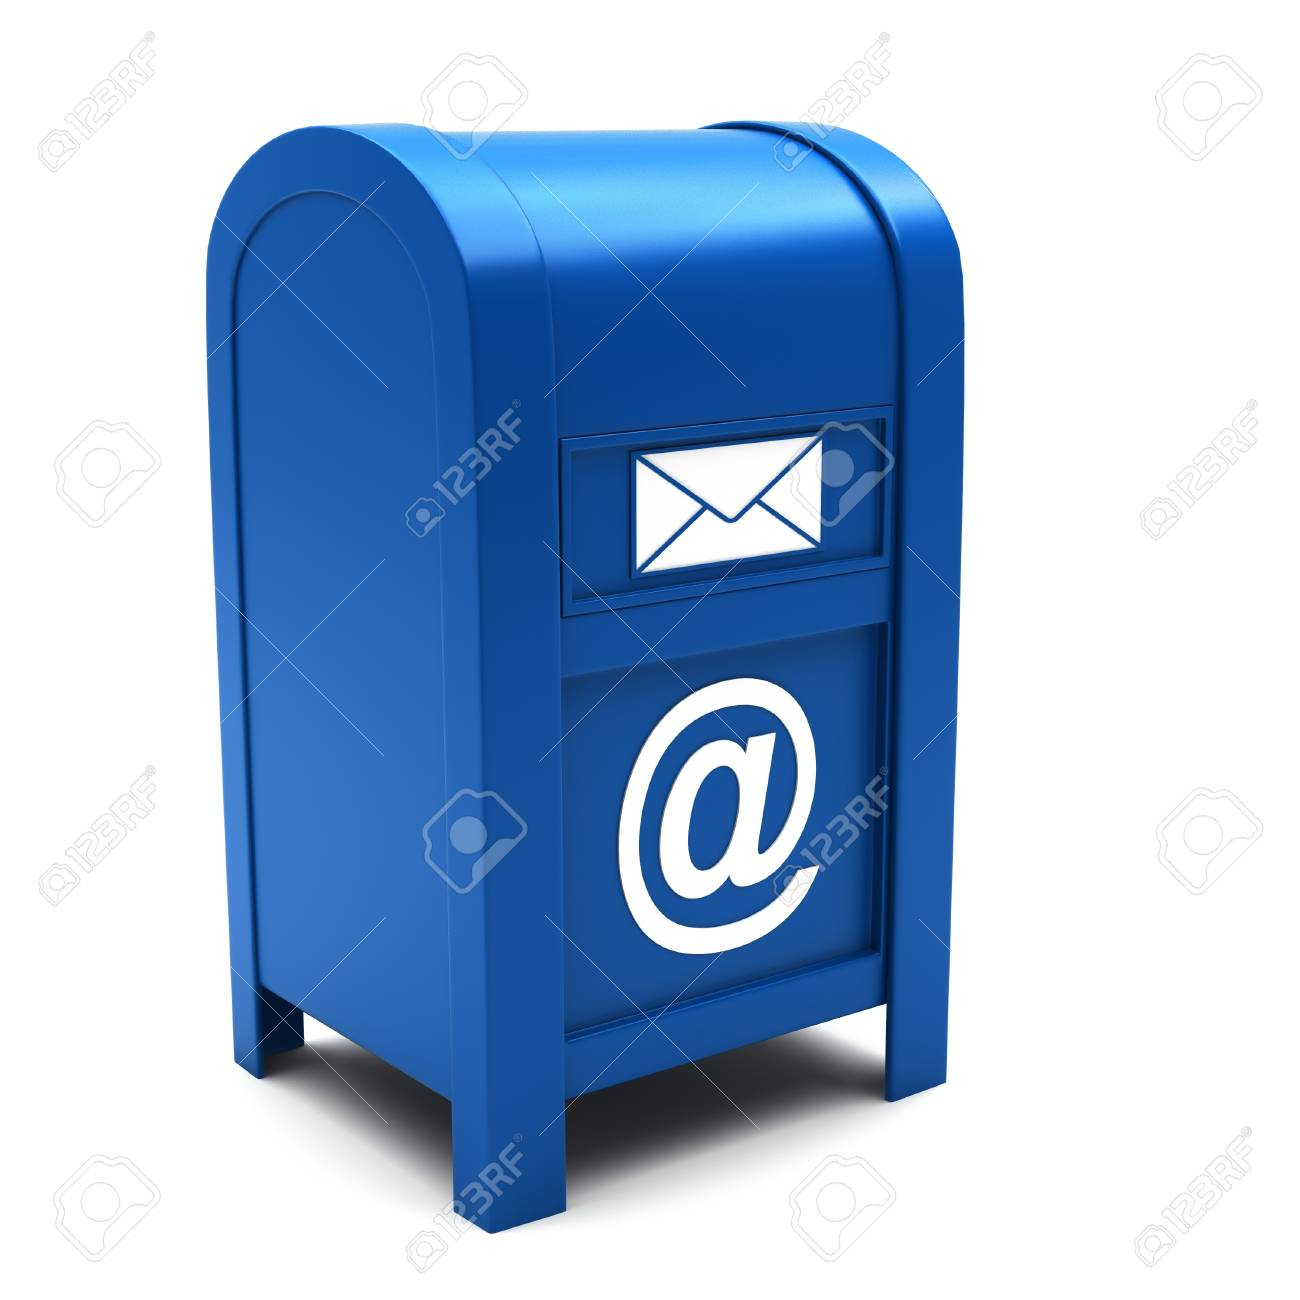 Mailbox on a white background. Stock Photo - 13320967